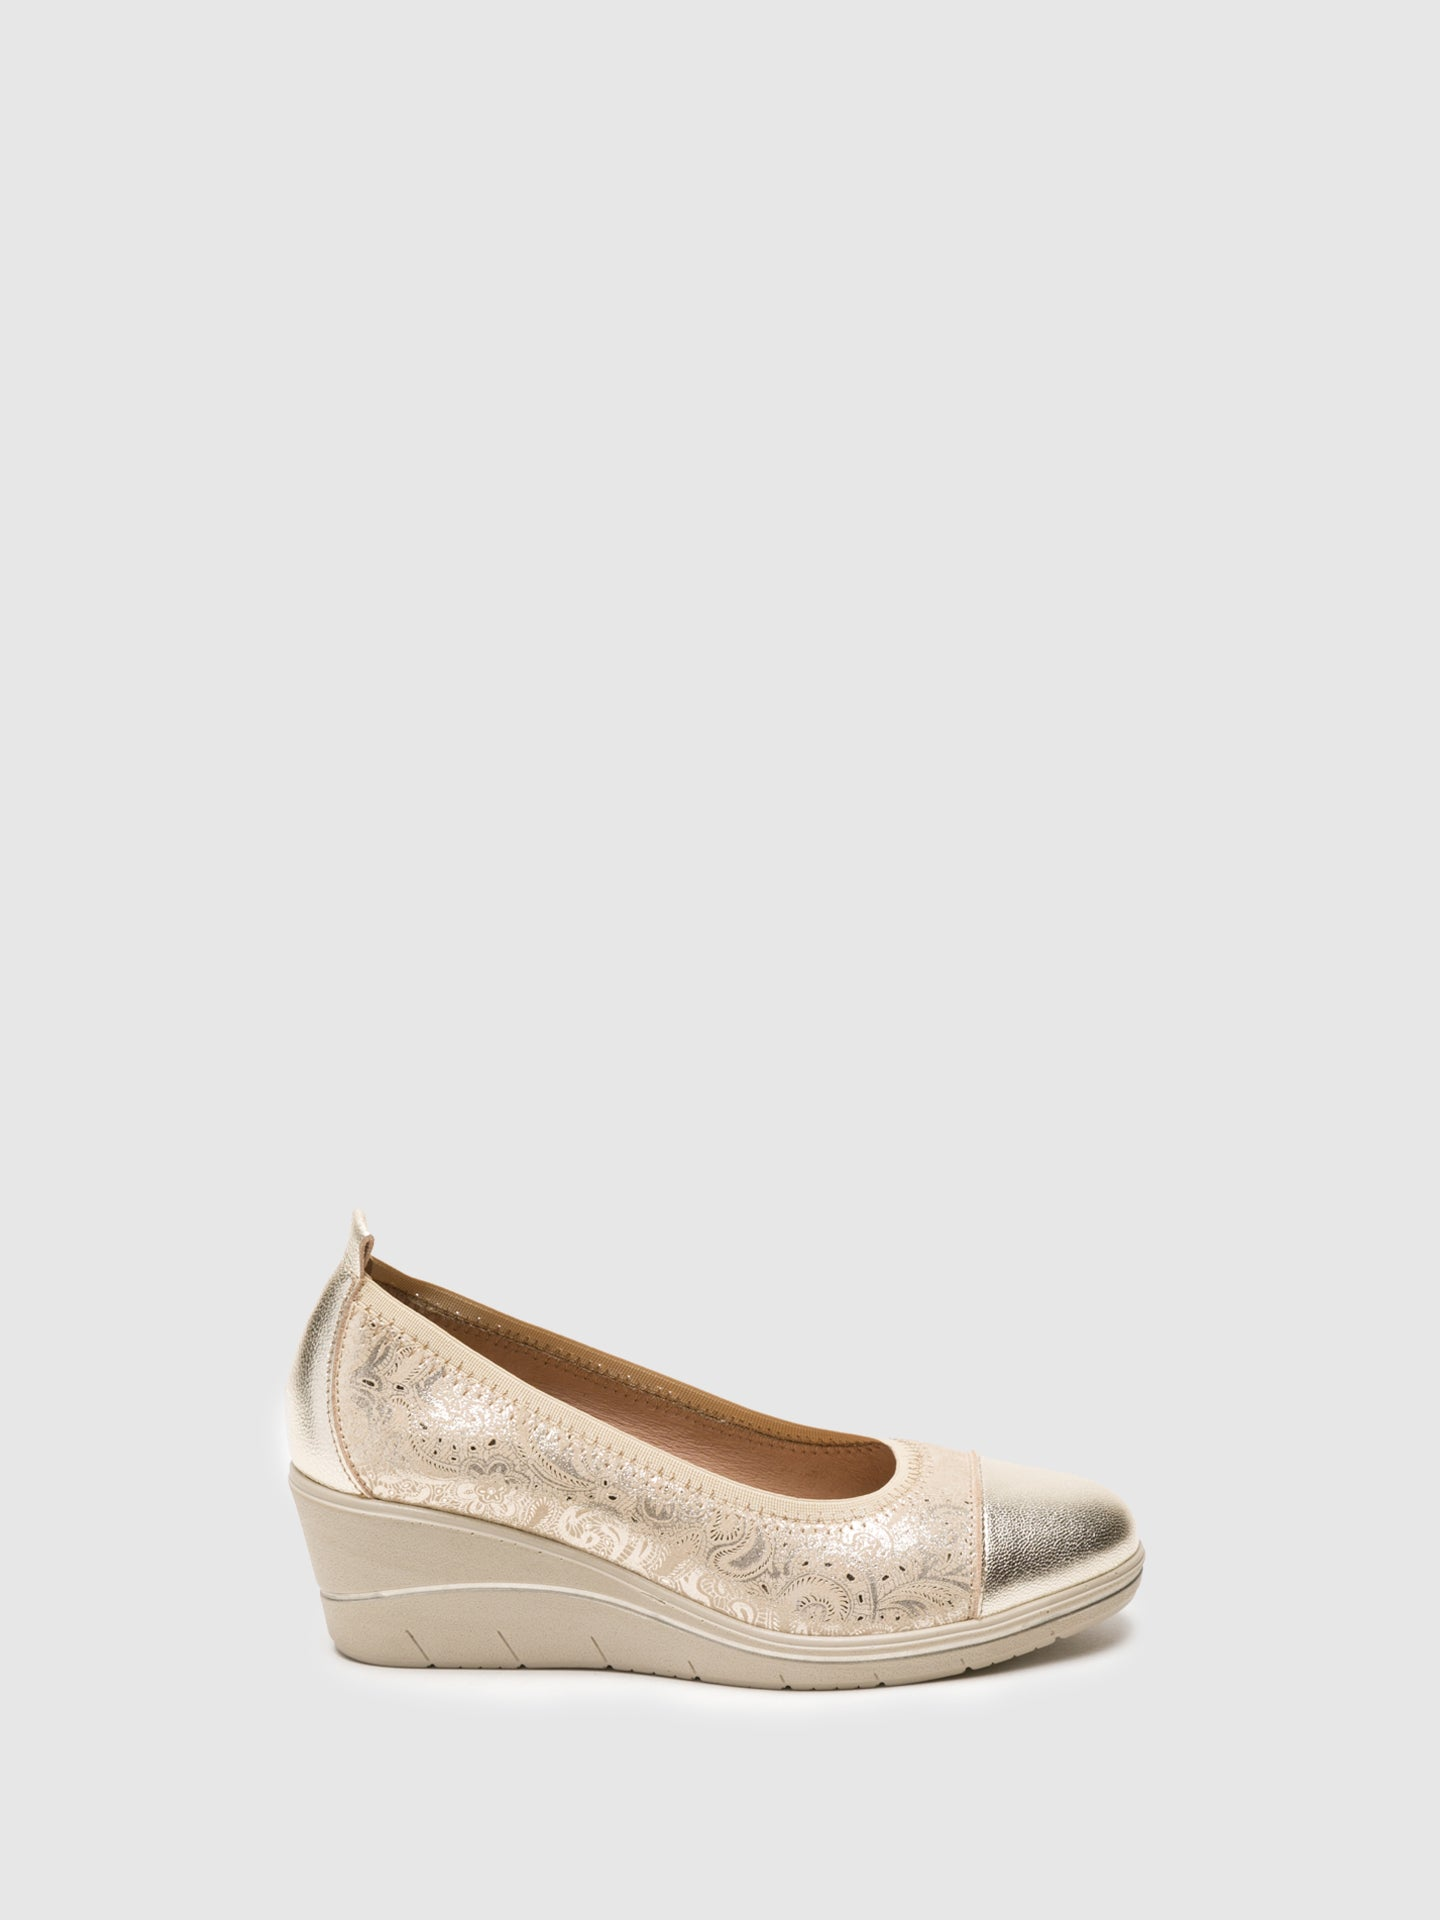 Foreva Gold Wedge Ballerinas